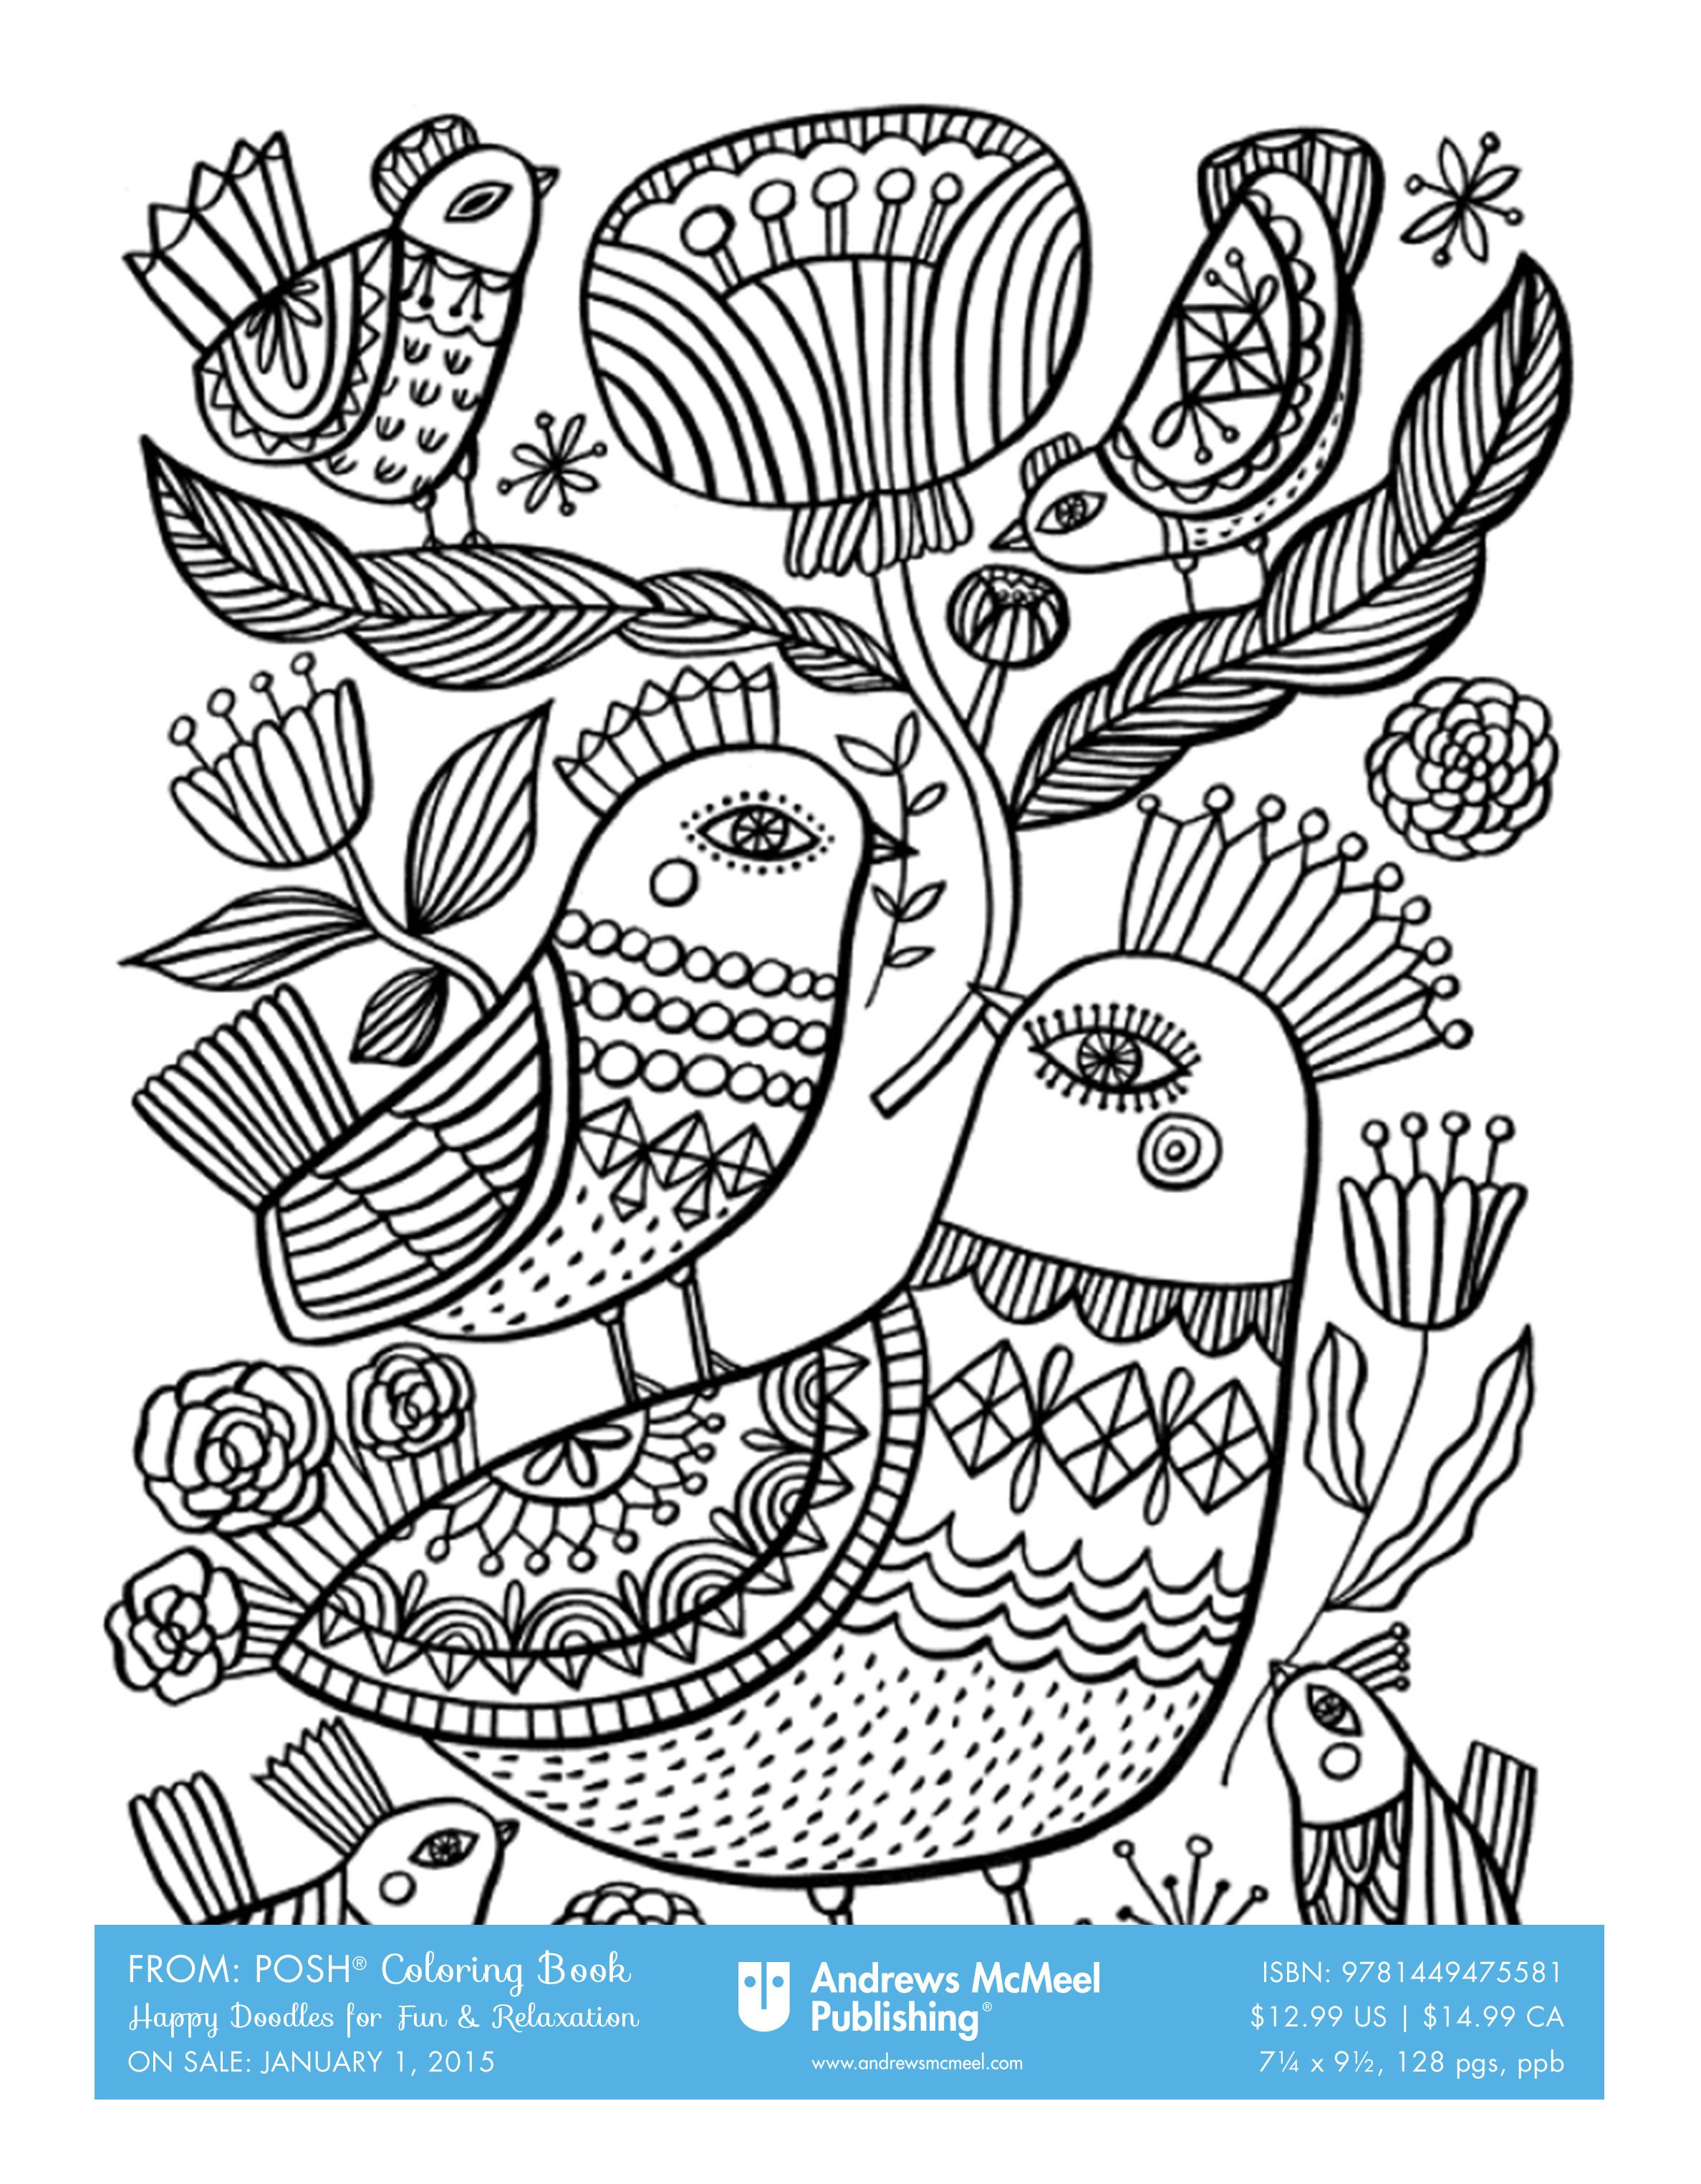 Free Downloadable Coloring Pages From The Poshcoloring Line